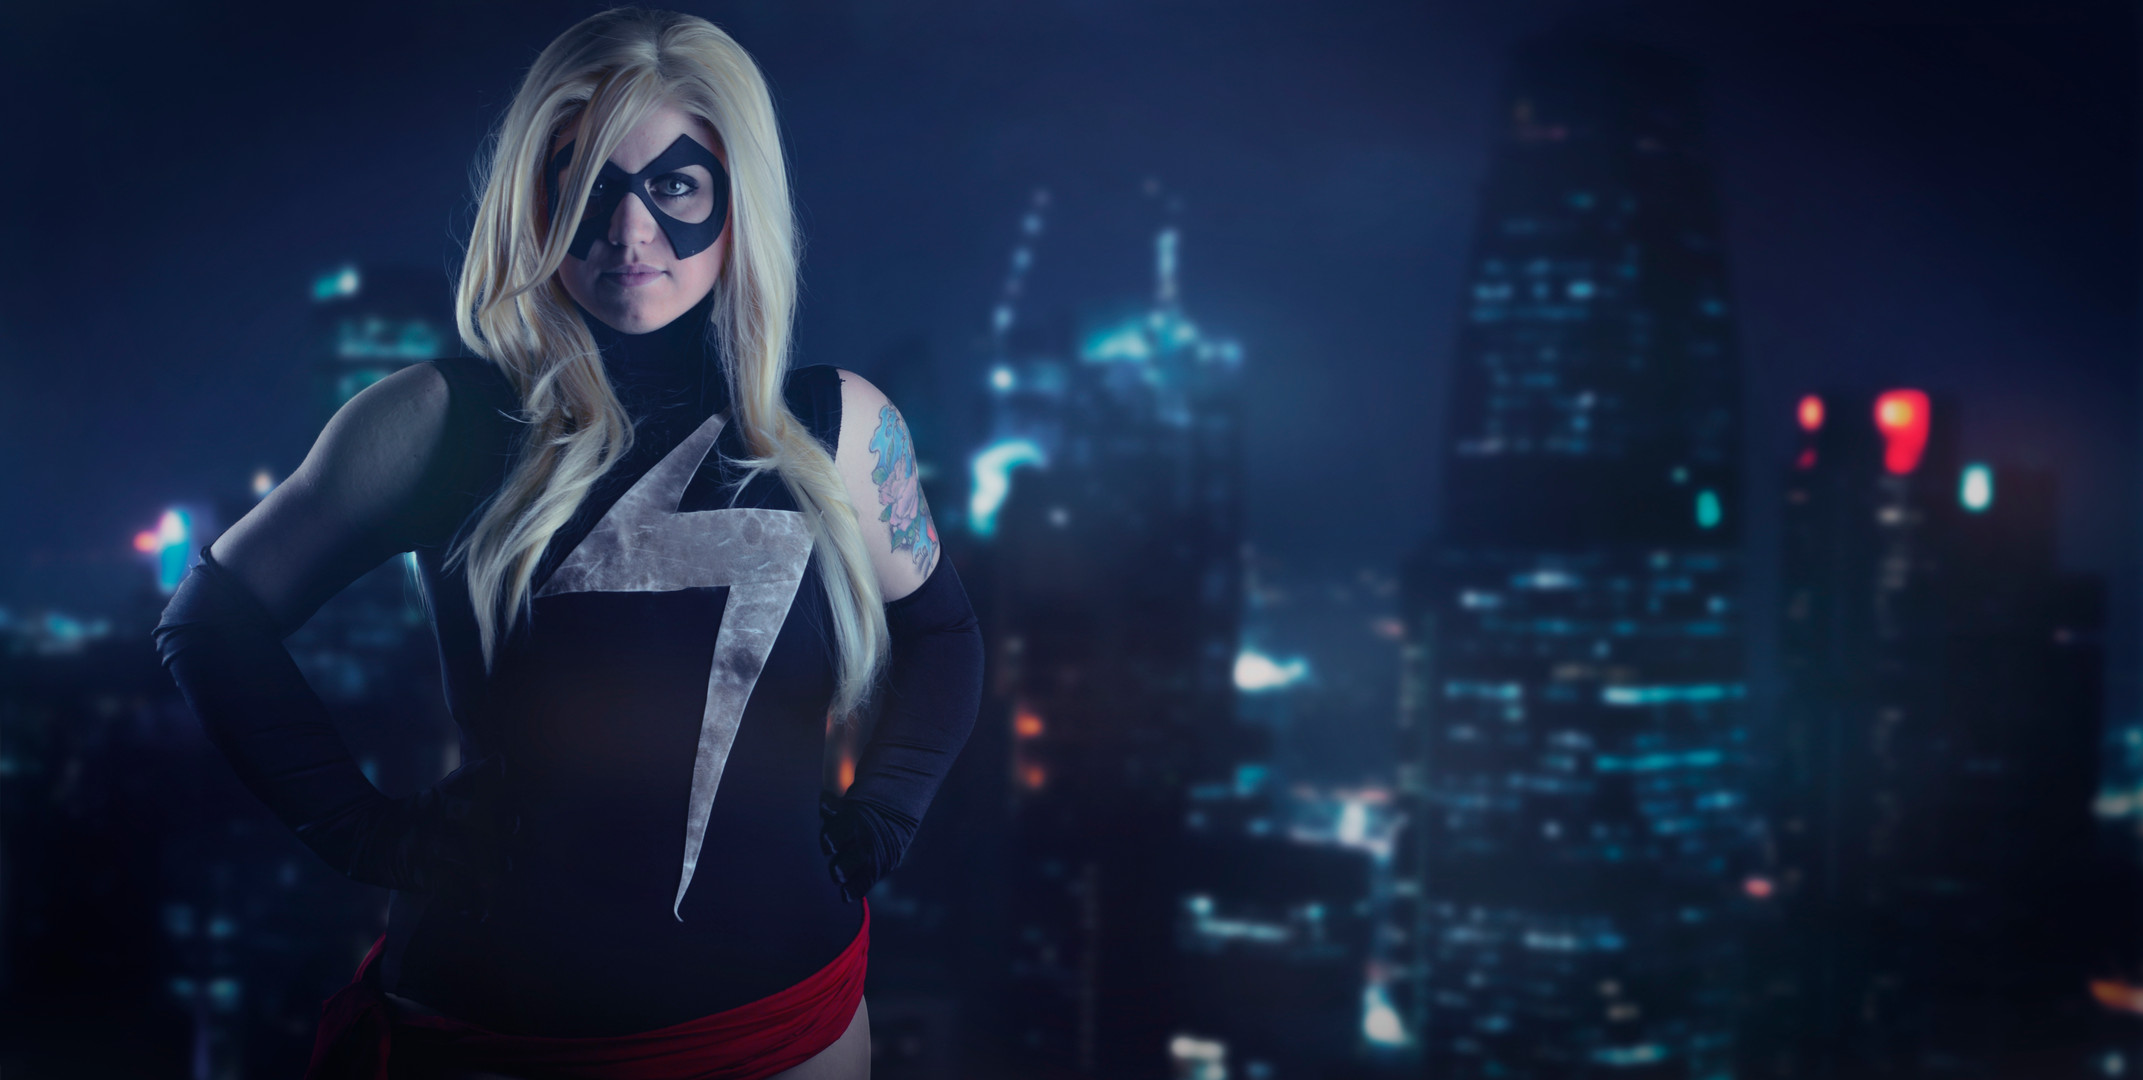 Ms Marvel Photo by Rebel Shotz Photography